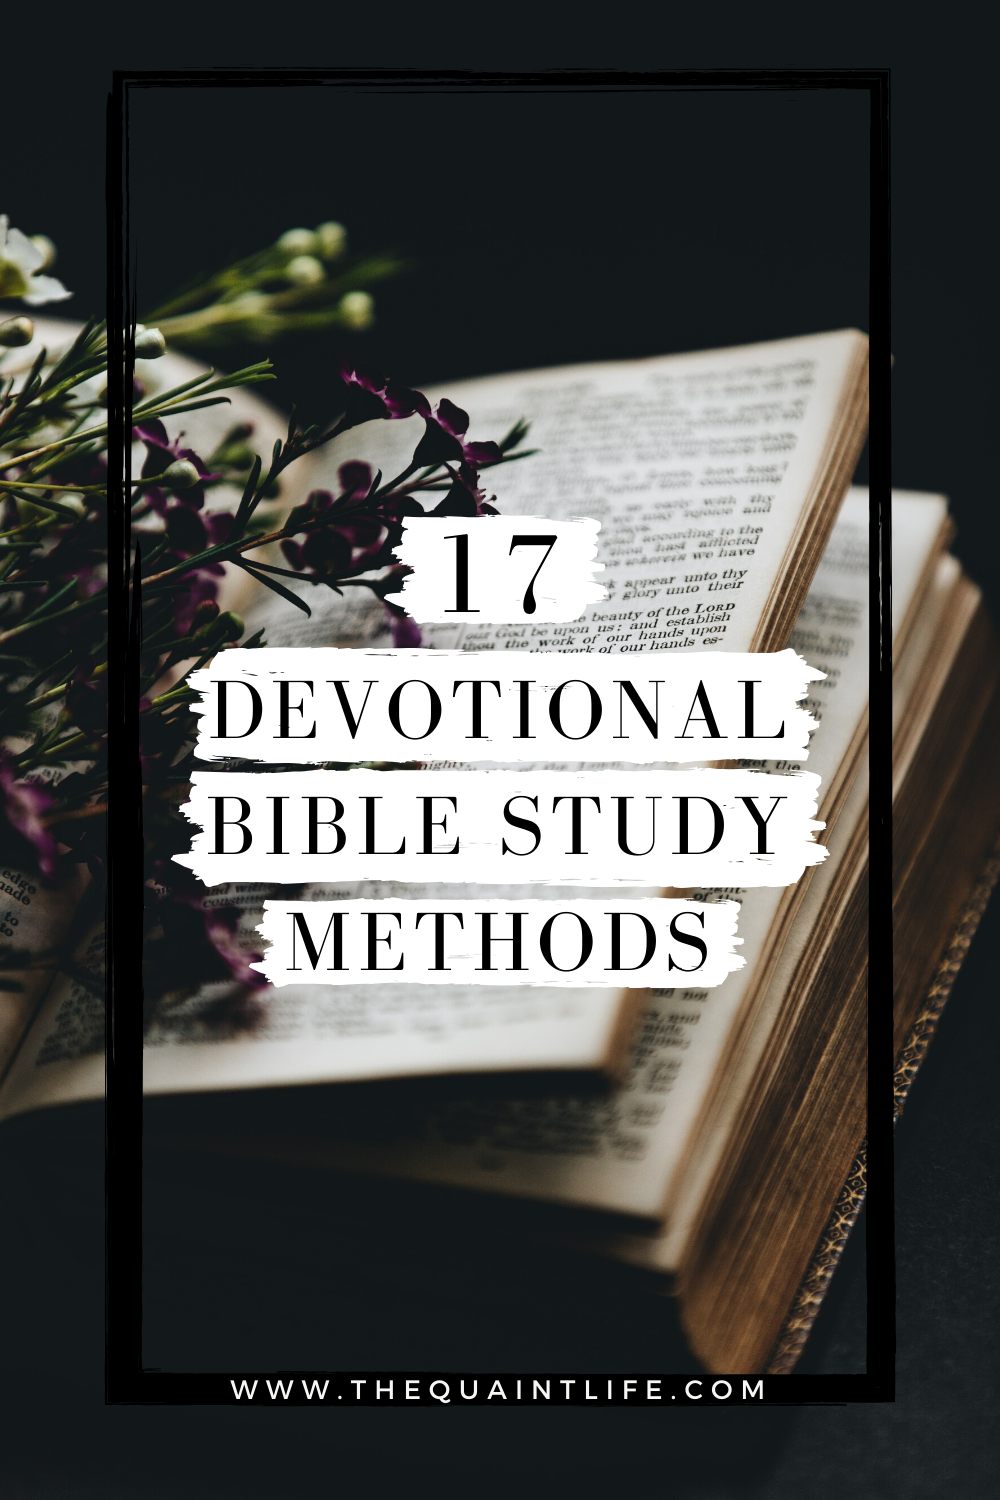 17 Devotional Bible Study Methods for Inductive Bible Study